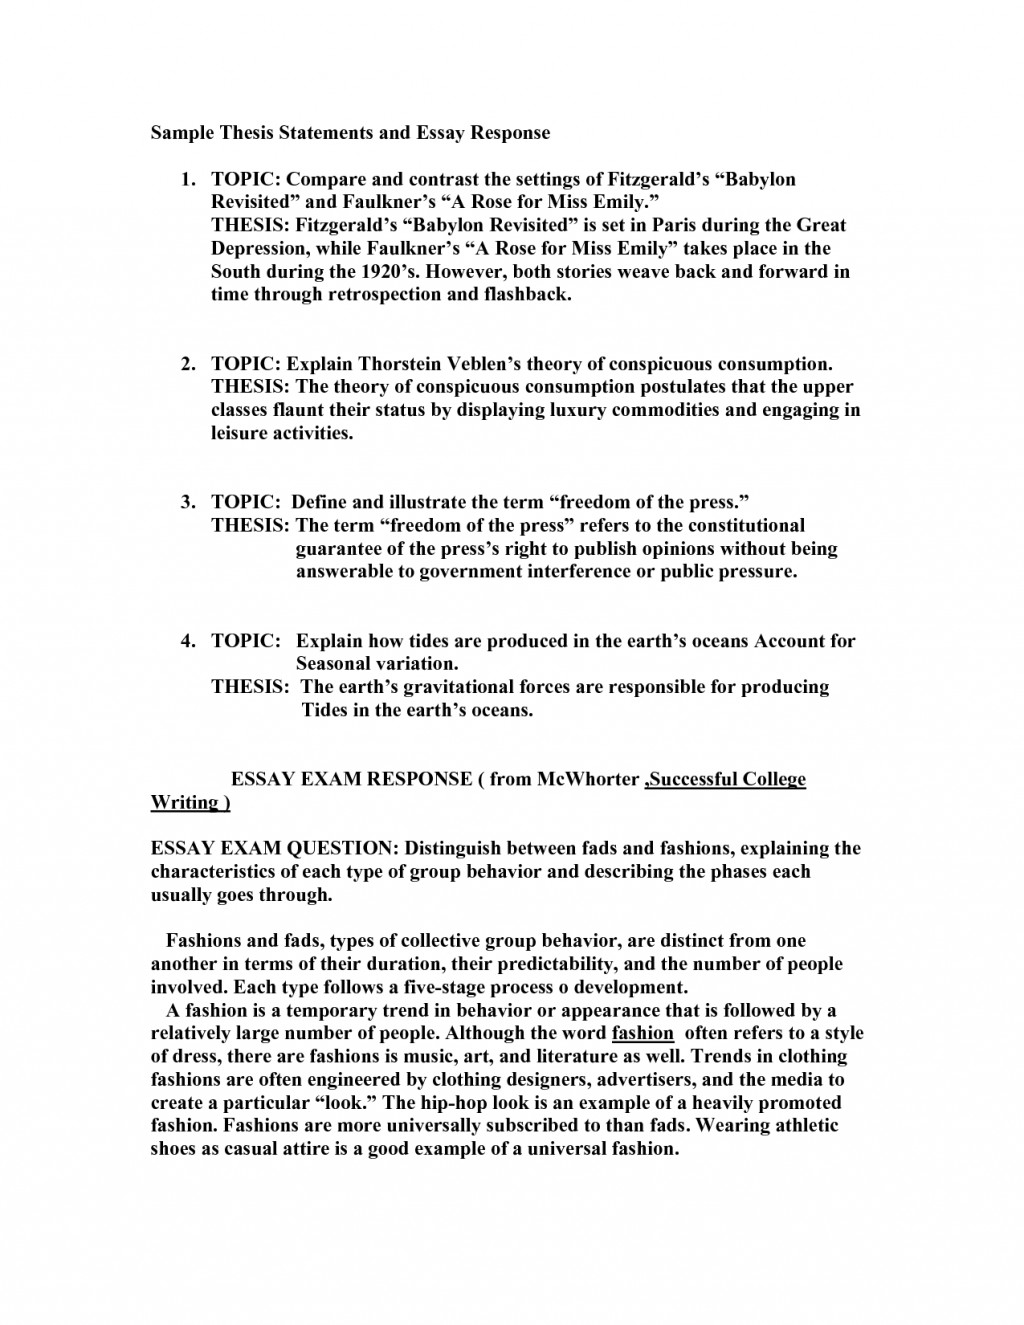 009 Essay Thesiss 6na1pphnb7 Unusual Thesis Examples Persuasive Topics Expository Critical Statement Large